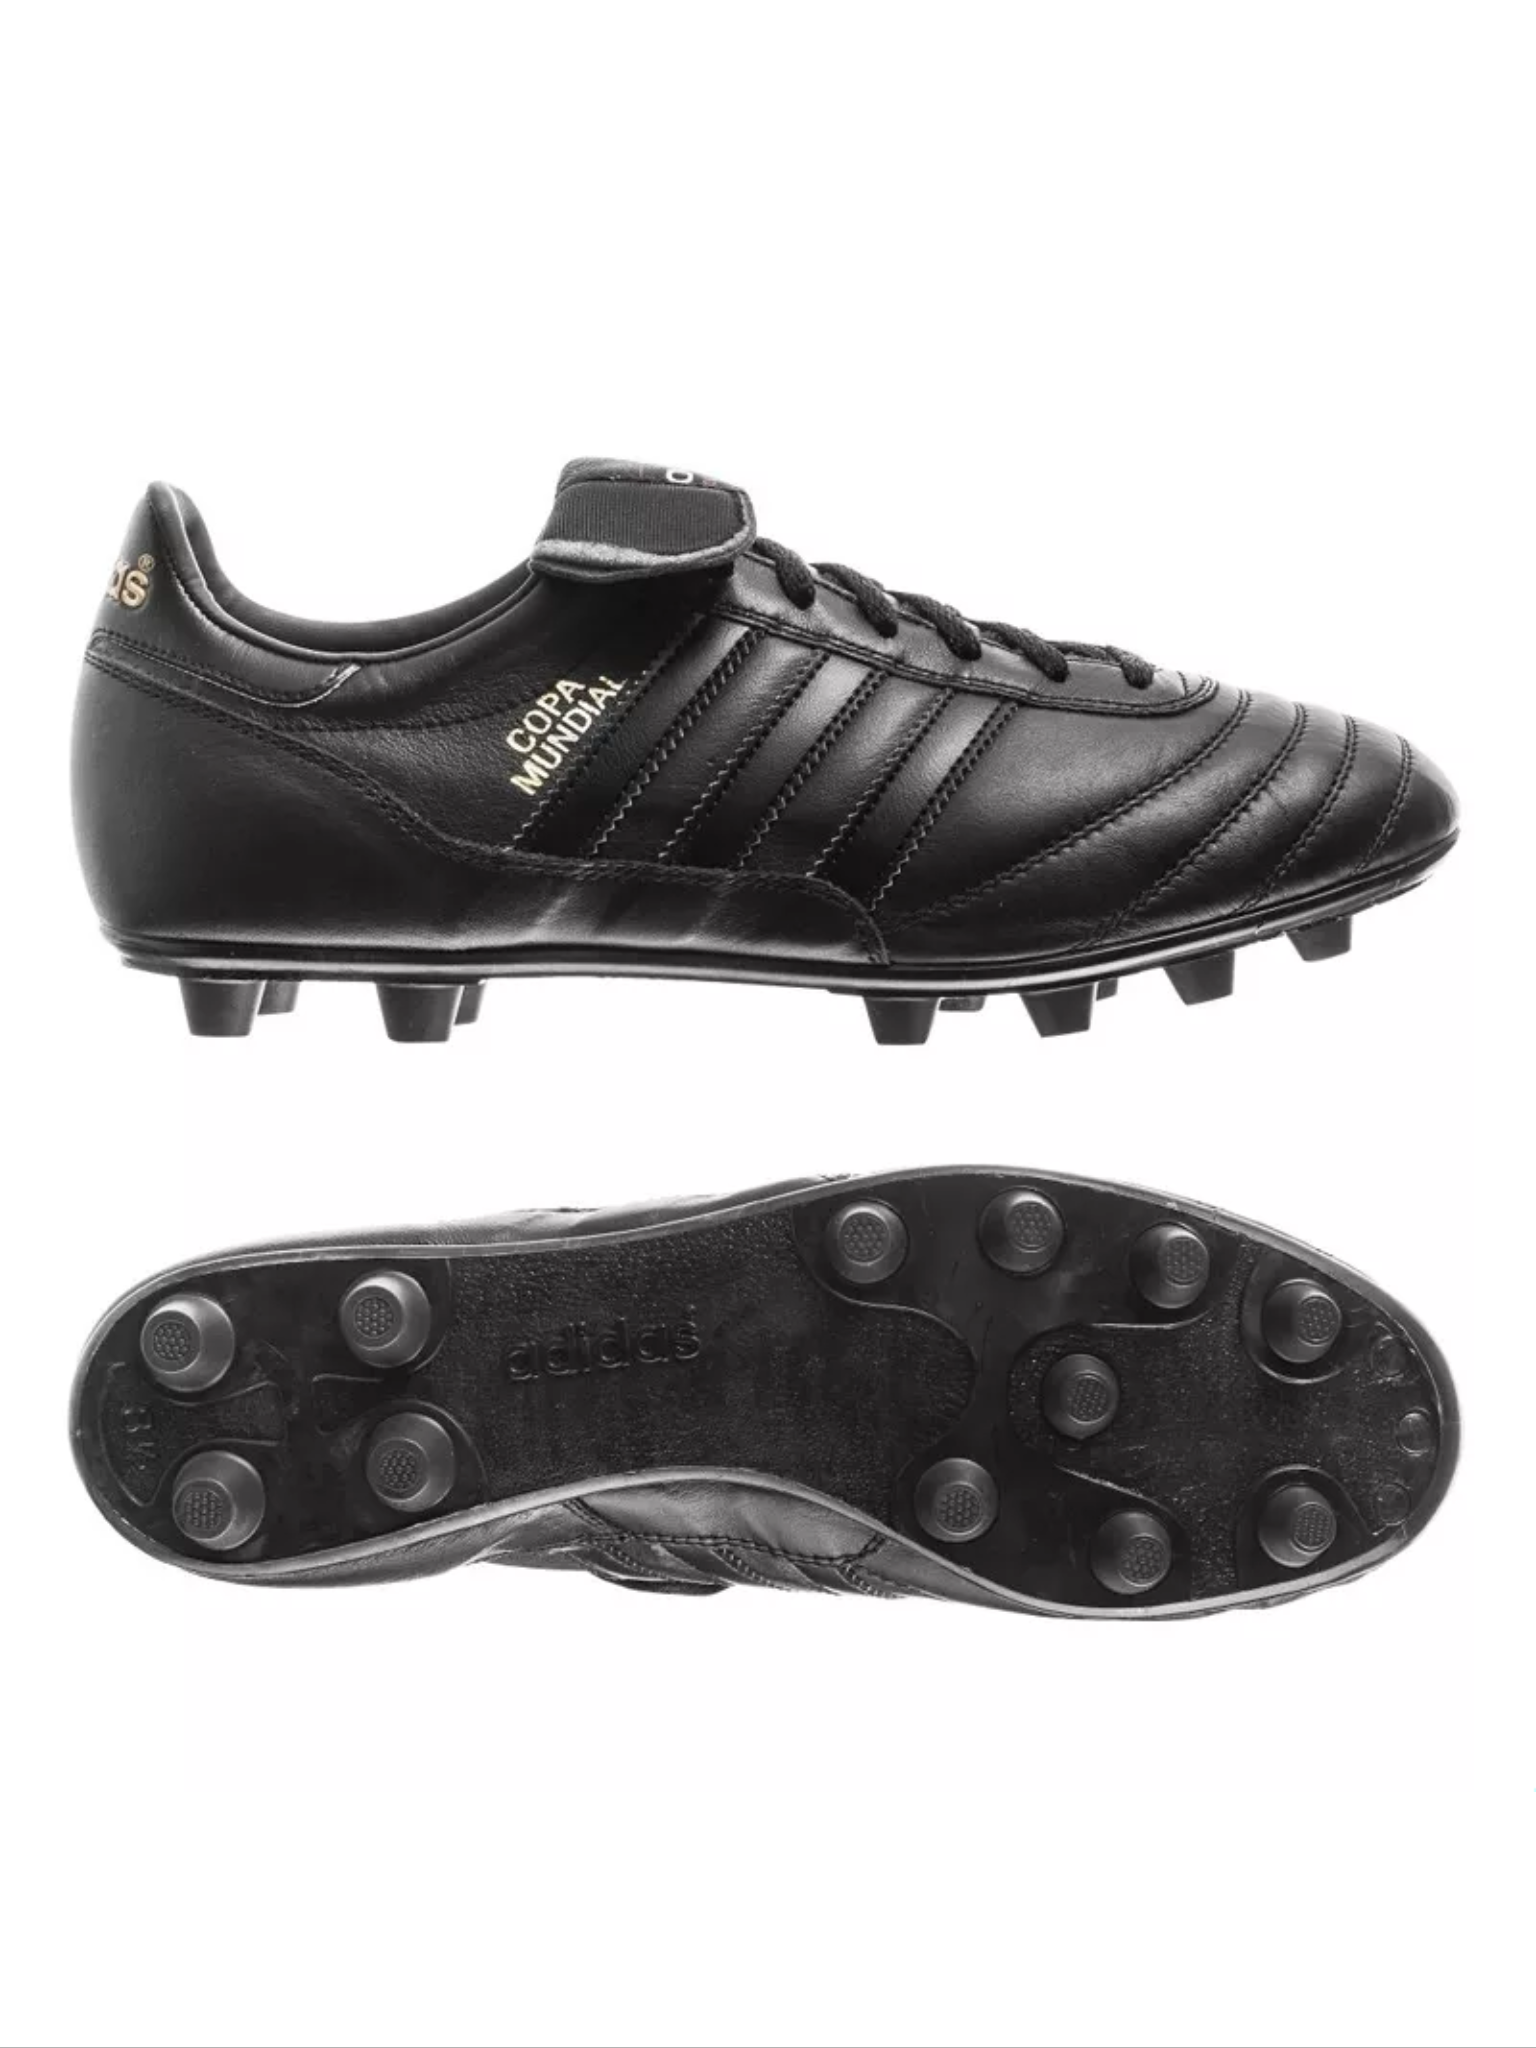 best sneakers 033e8 58175 Adidas Copa Mundial in black on black. Wear like iron and feel like  butter... Adidas Copa Mundial Blackout Edition